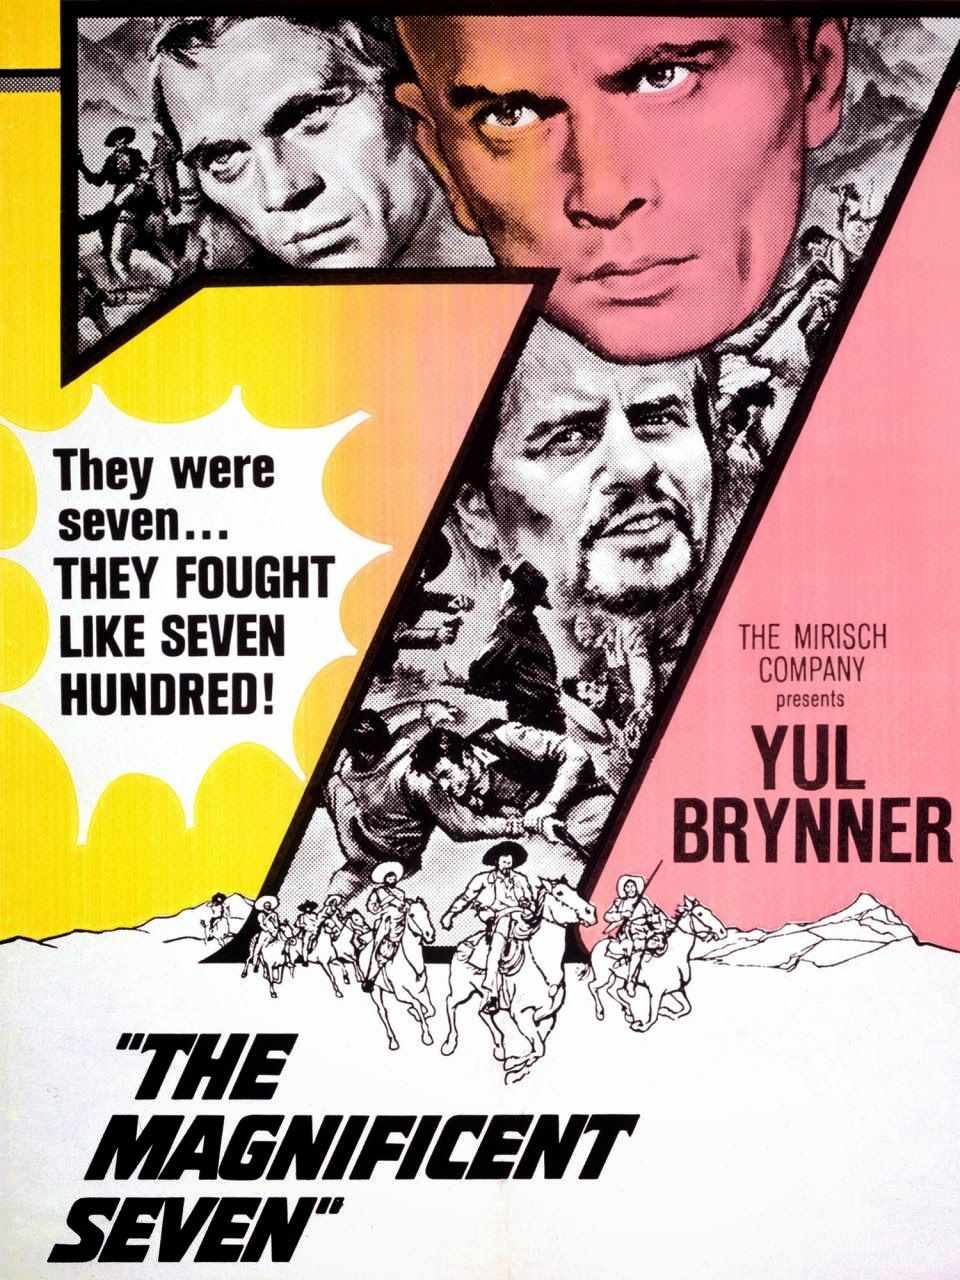 The Magnificent Seven 1960 Amazing Movie Posters